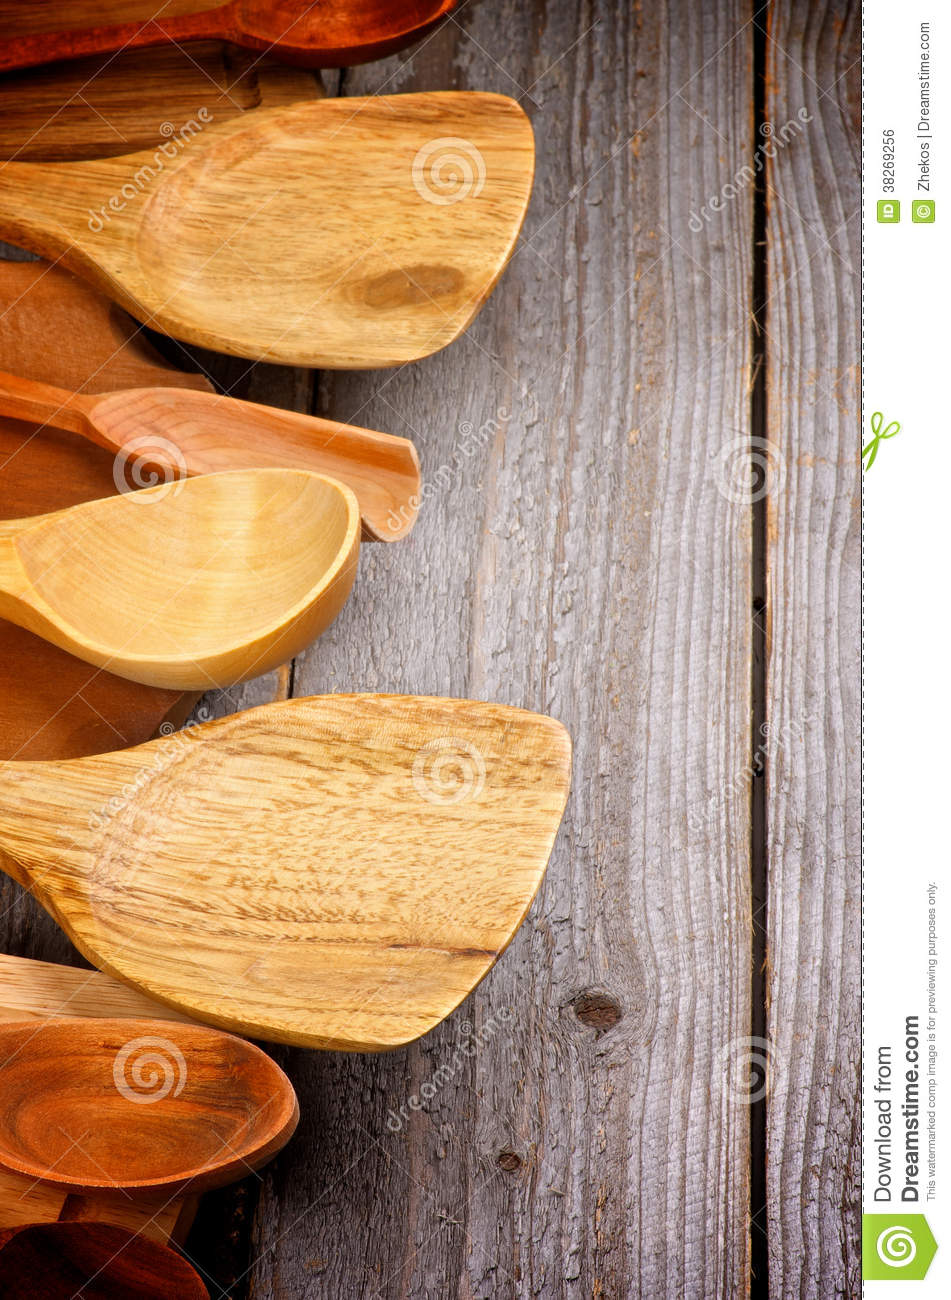 Kitchen Utensils Border Stock Photo Image Of Concept